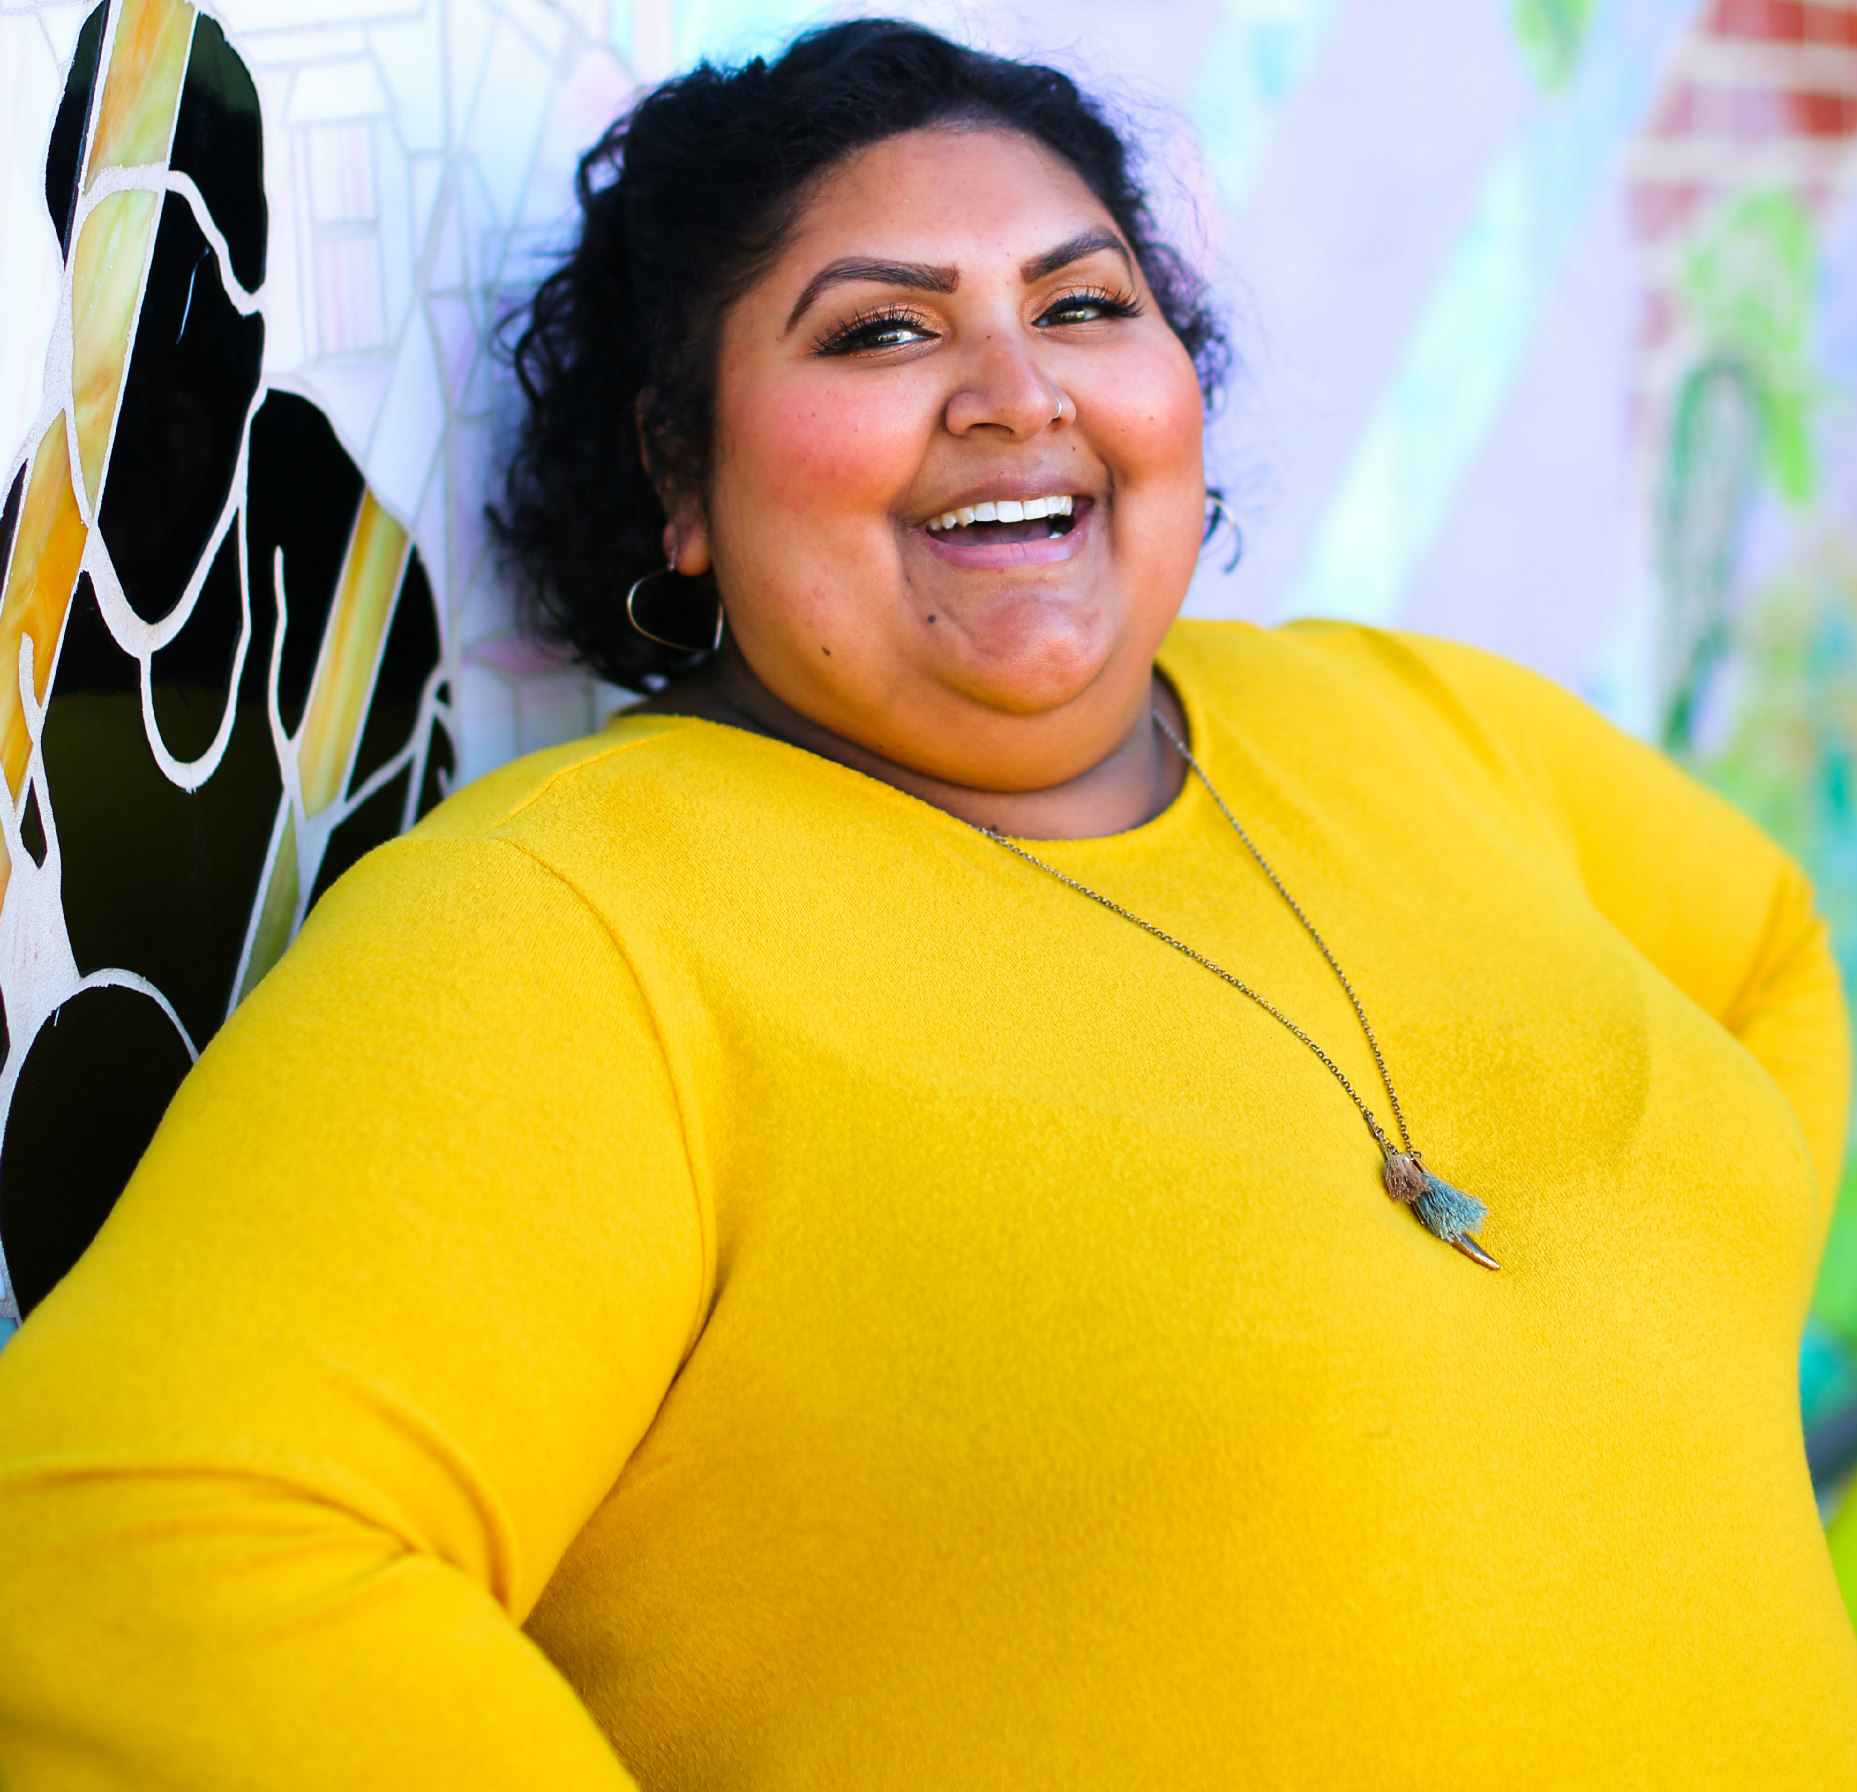 a plus-size person wearing a yellow shirt smiles brightly at the camera